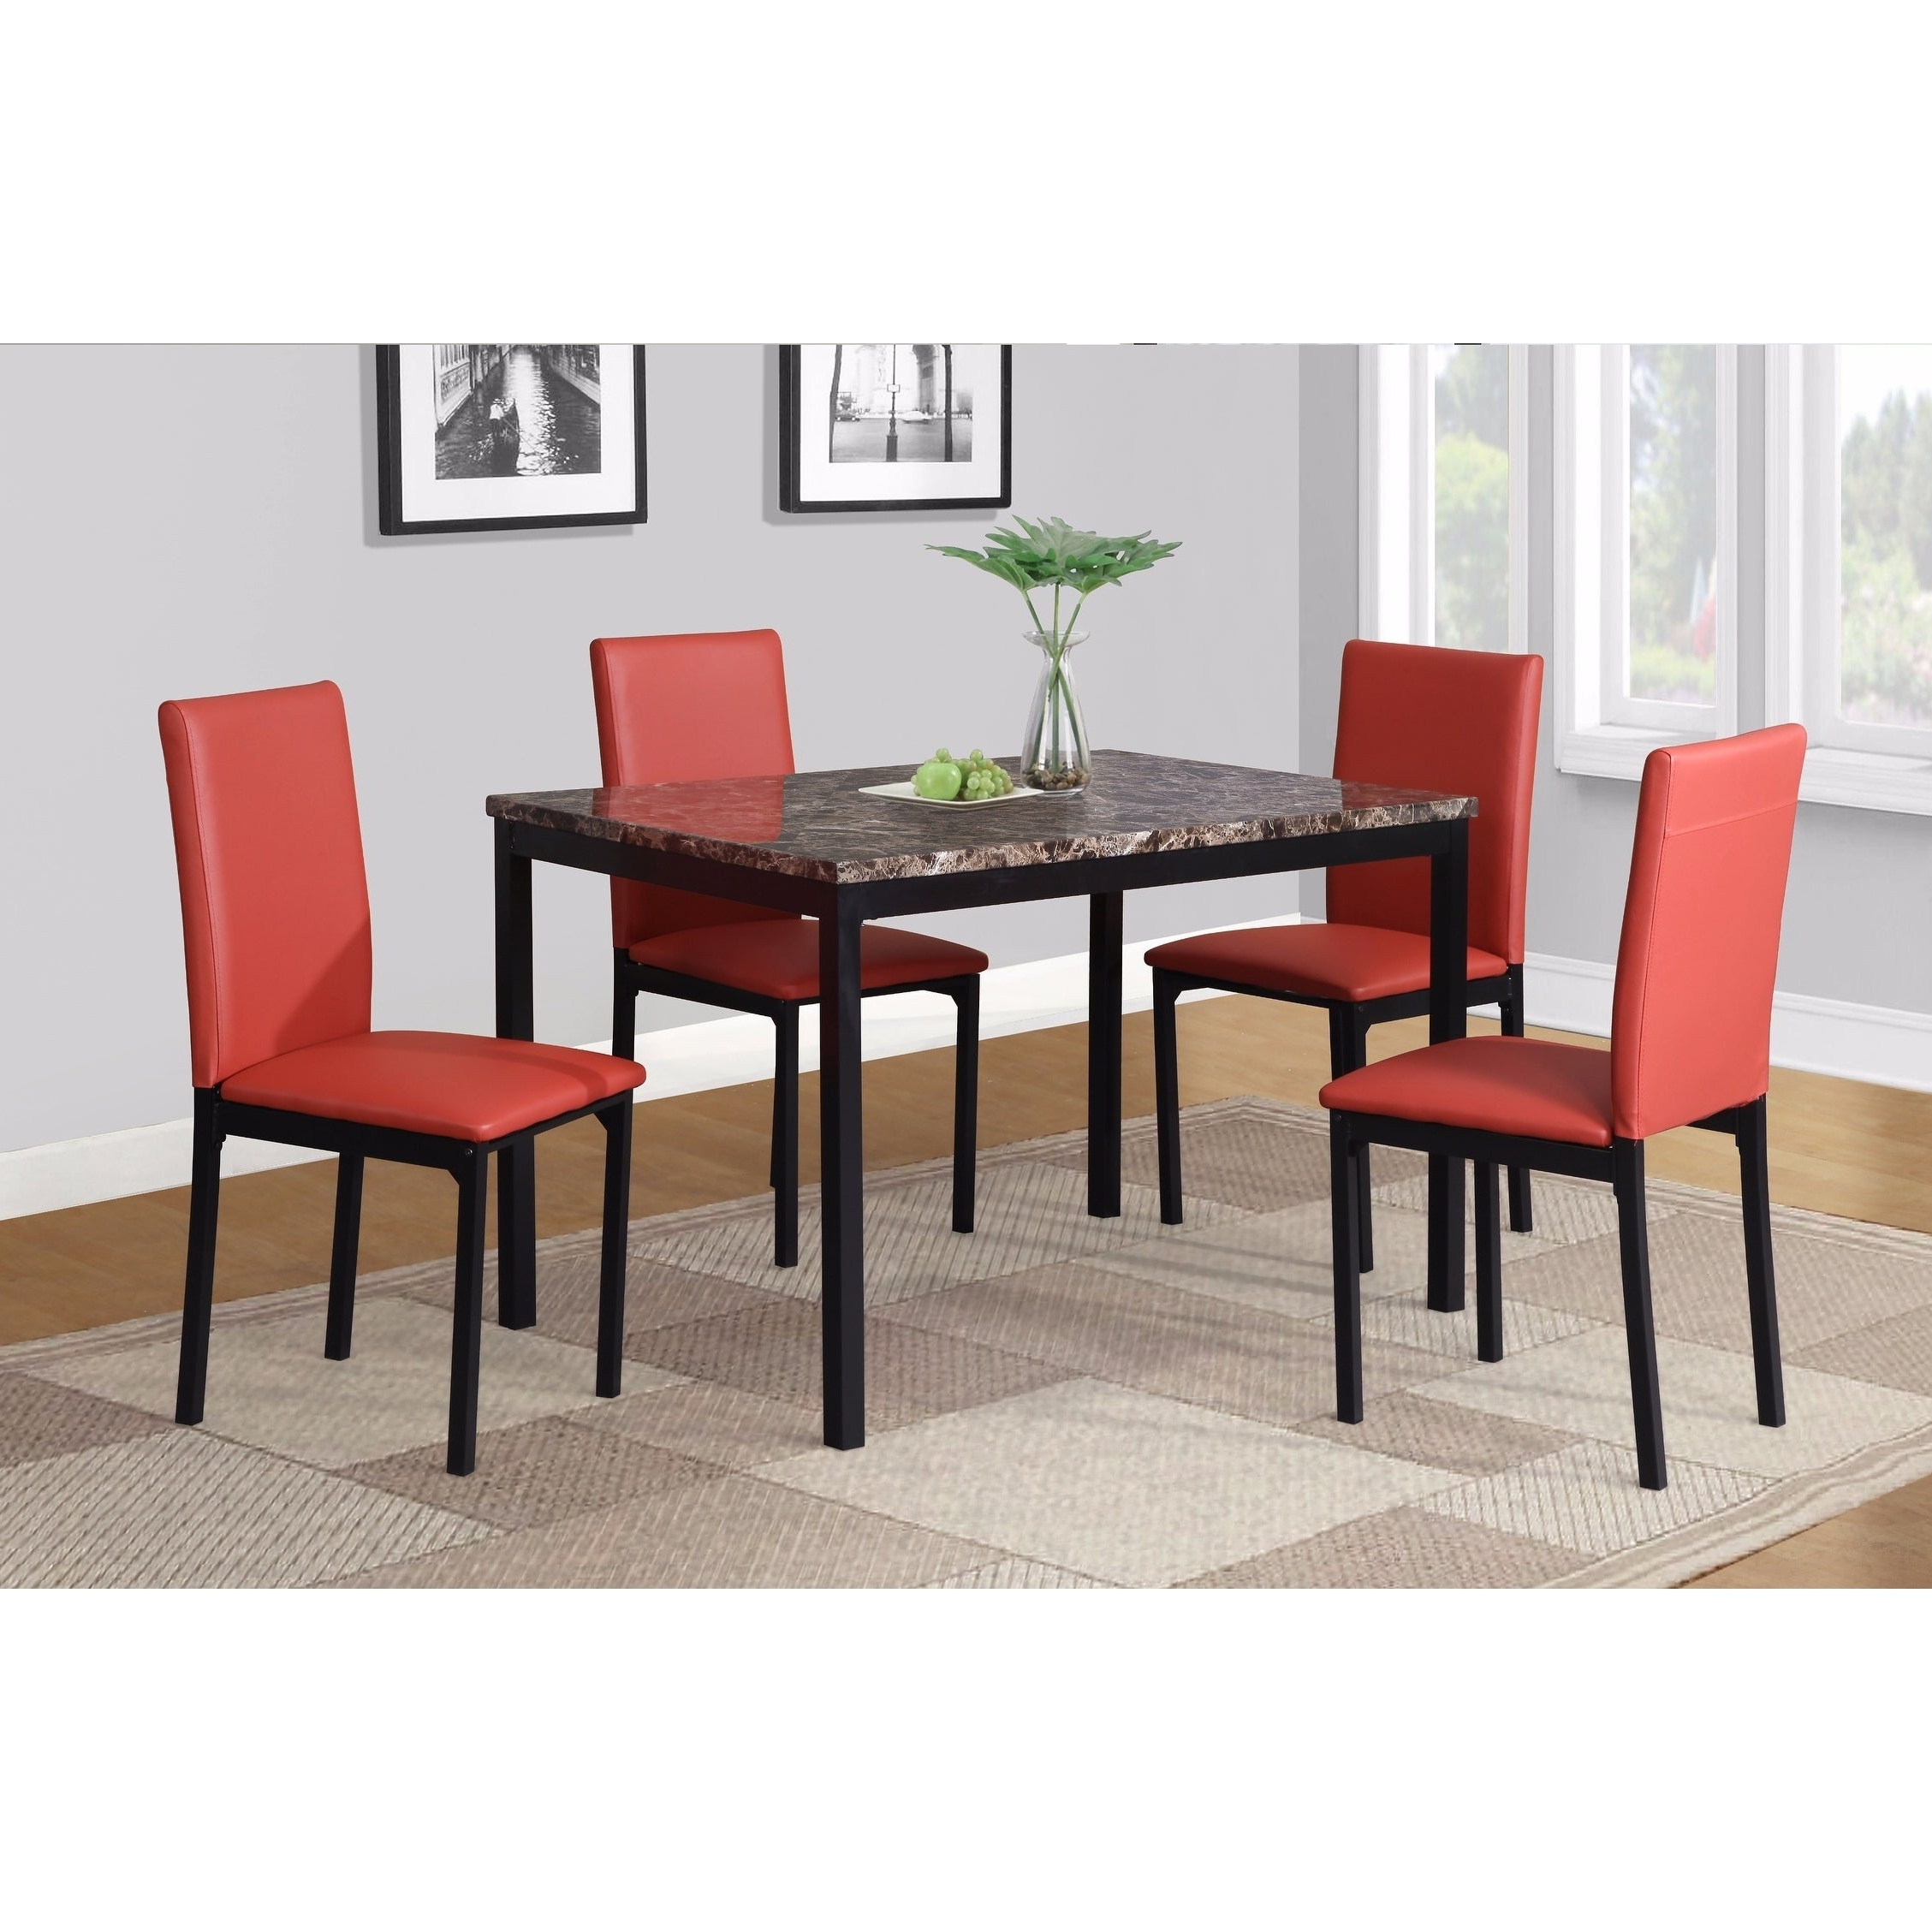 Shop Noyes Faux Leather Seat Metal Frame Black Dining Chairs, Set Of Within Well Known Noyes 5 Piece Dining Sets (View 20 of 25)